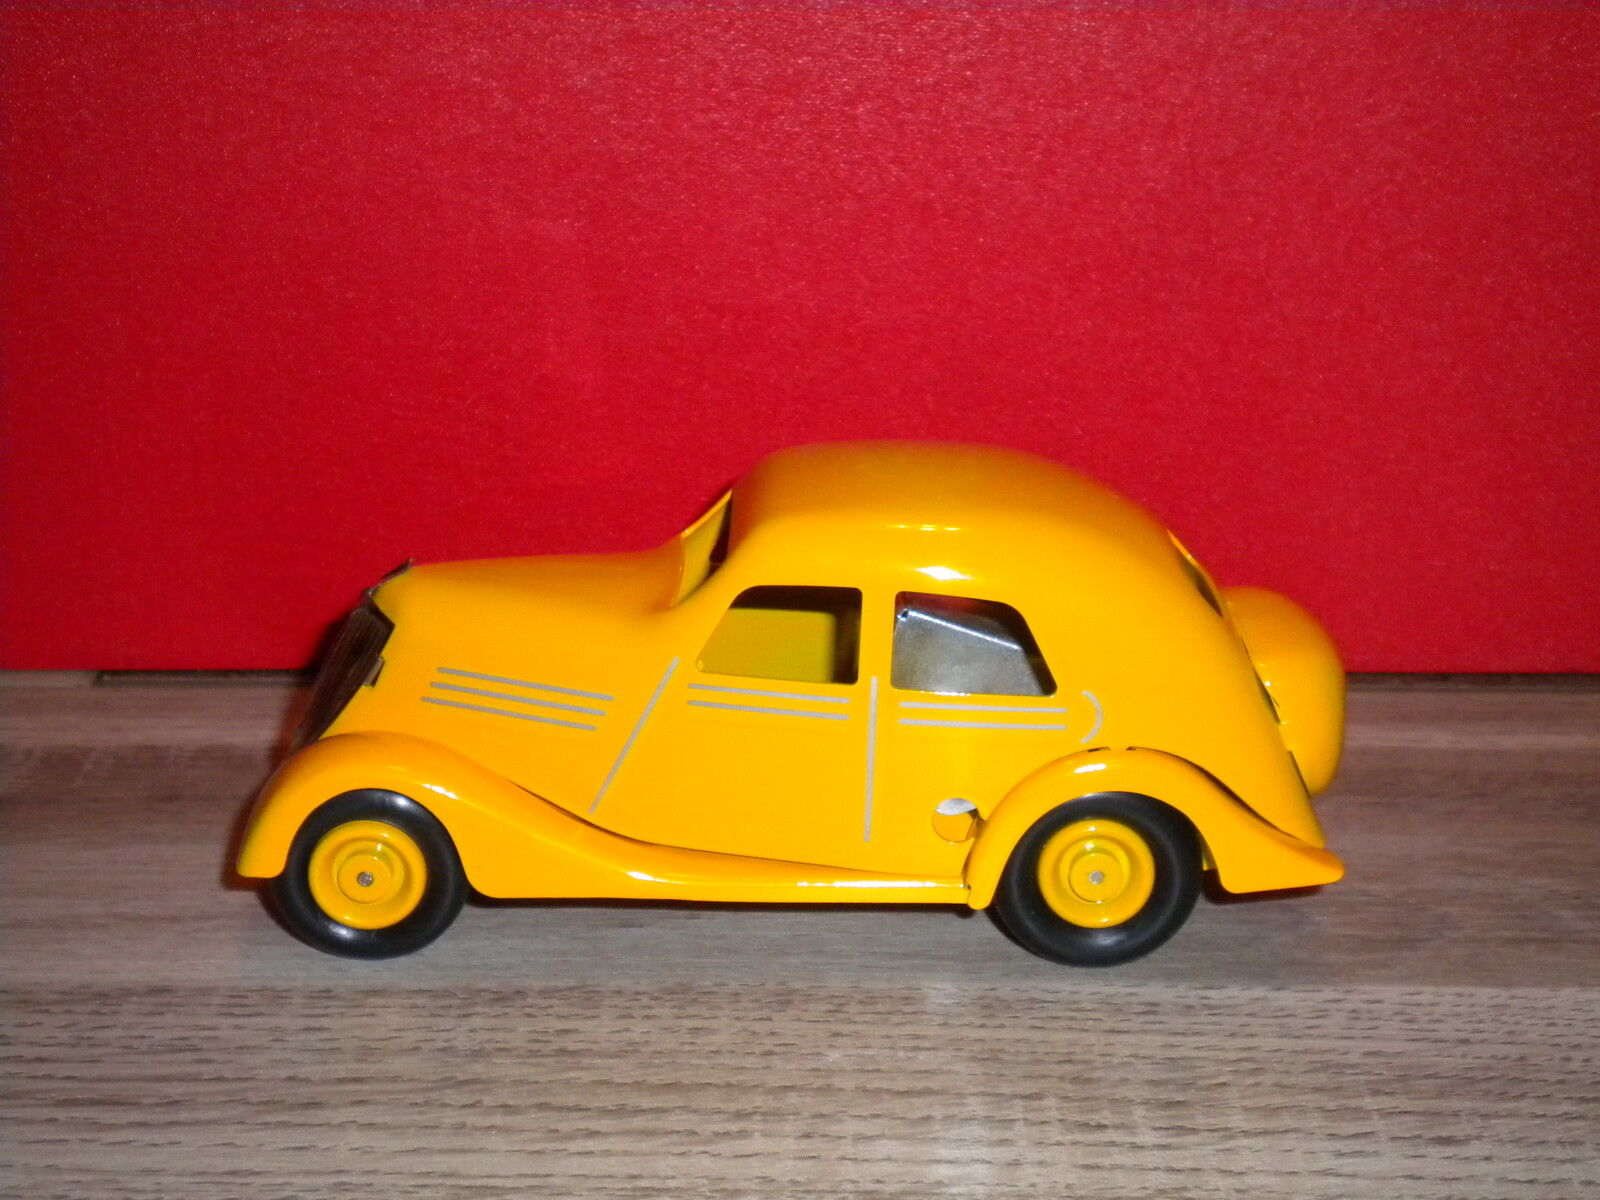 Renault primaquatre yellow has key ed limitee 1000 ex cij by norev new in box